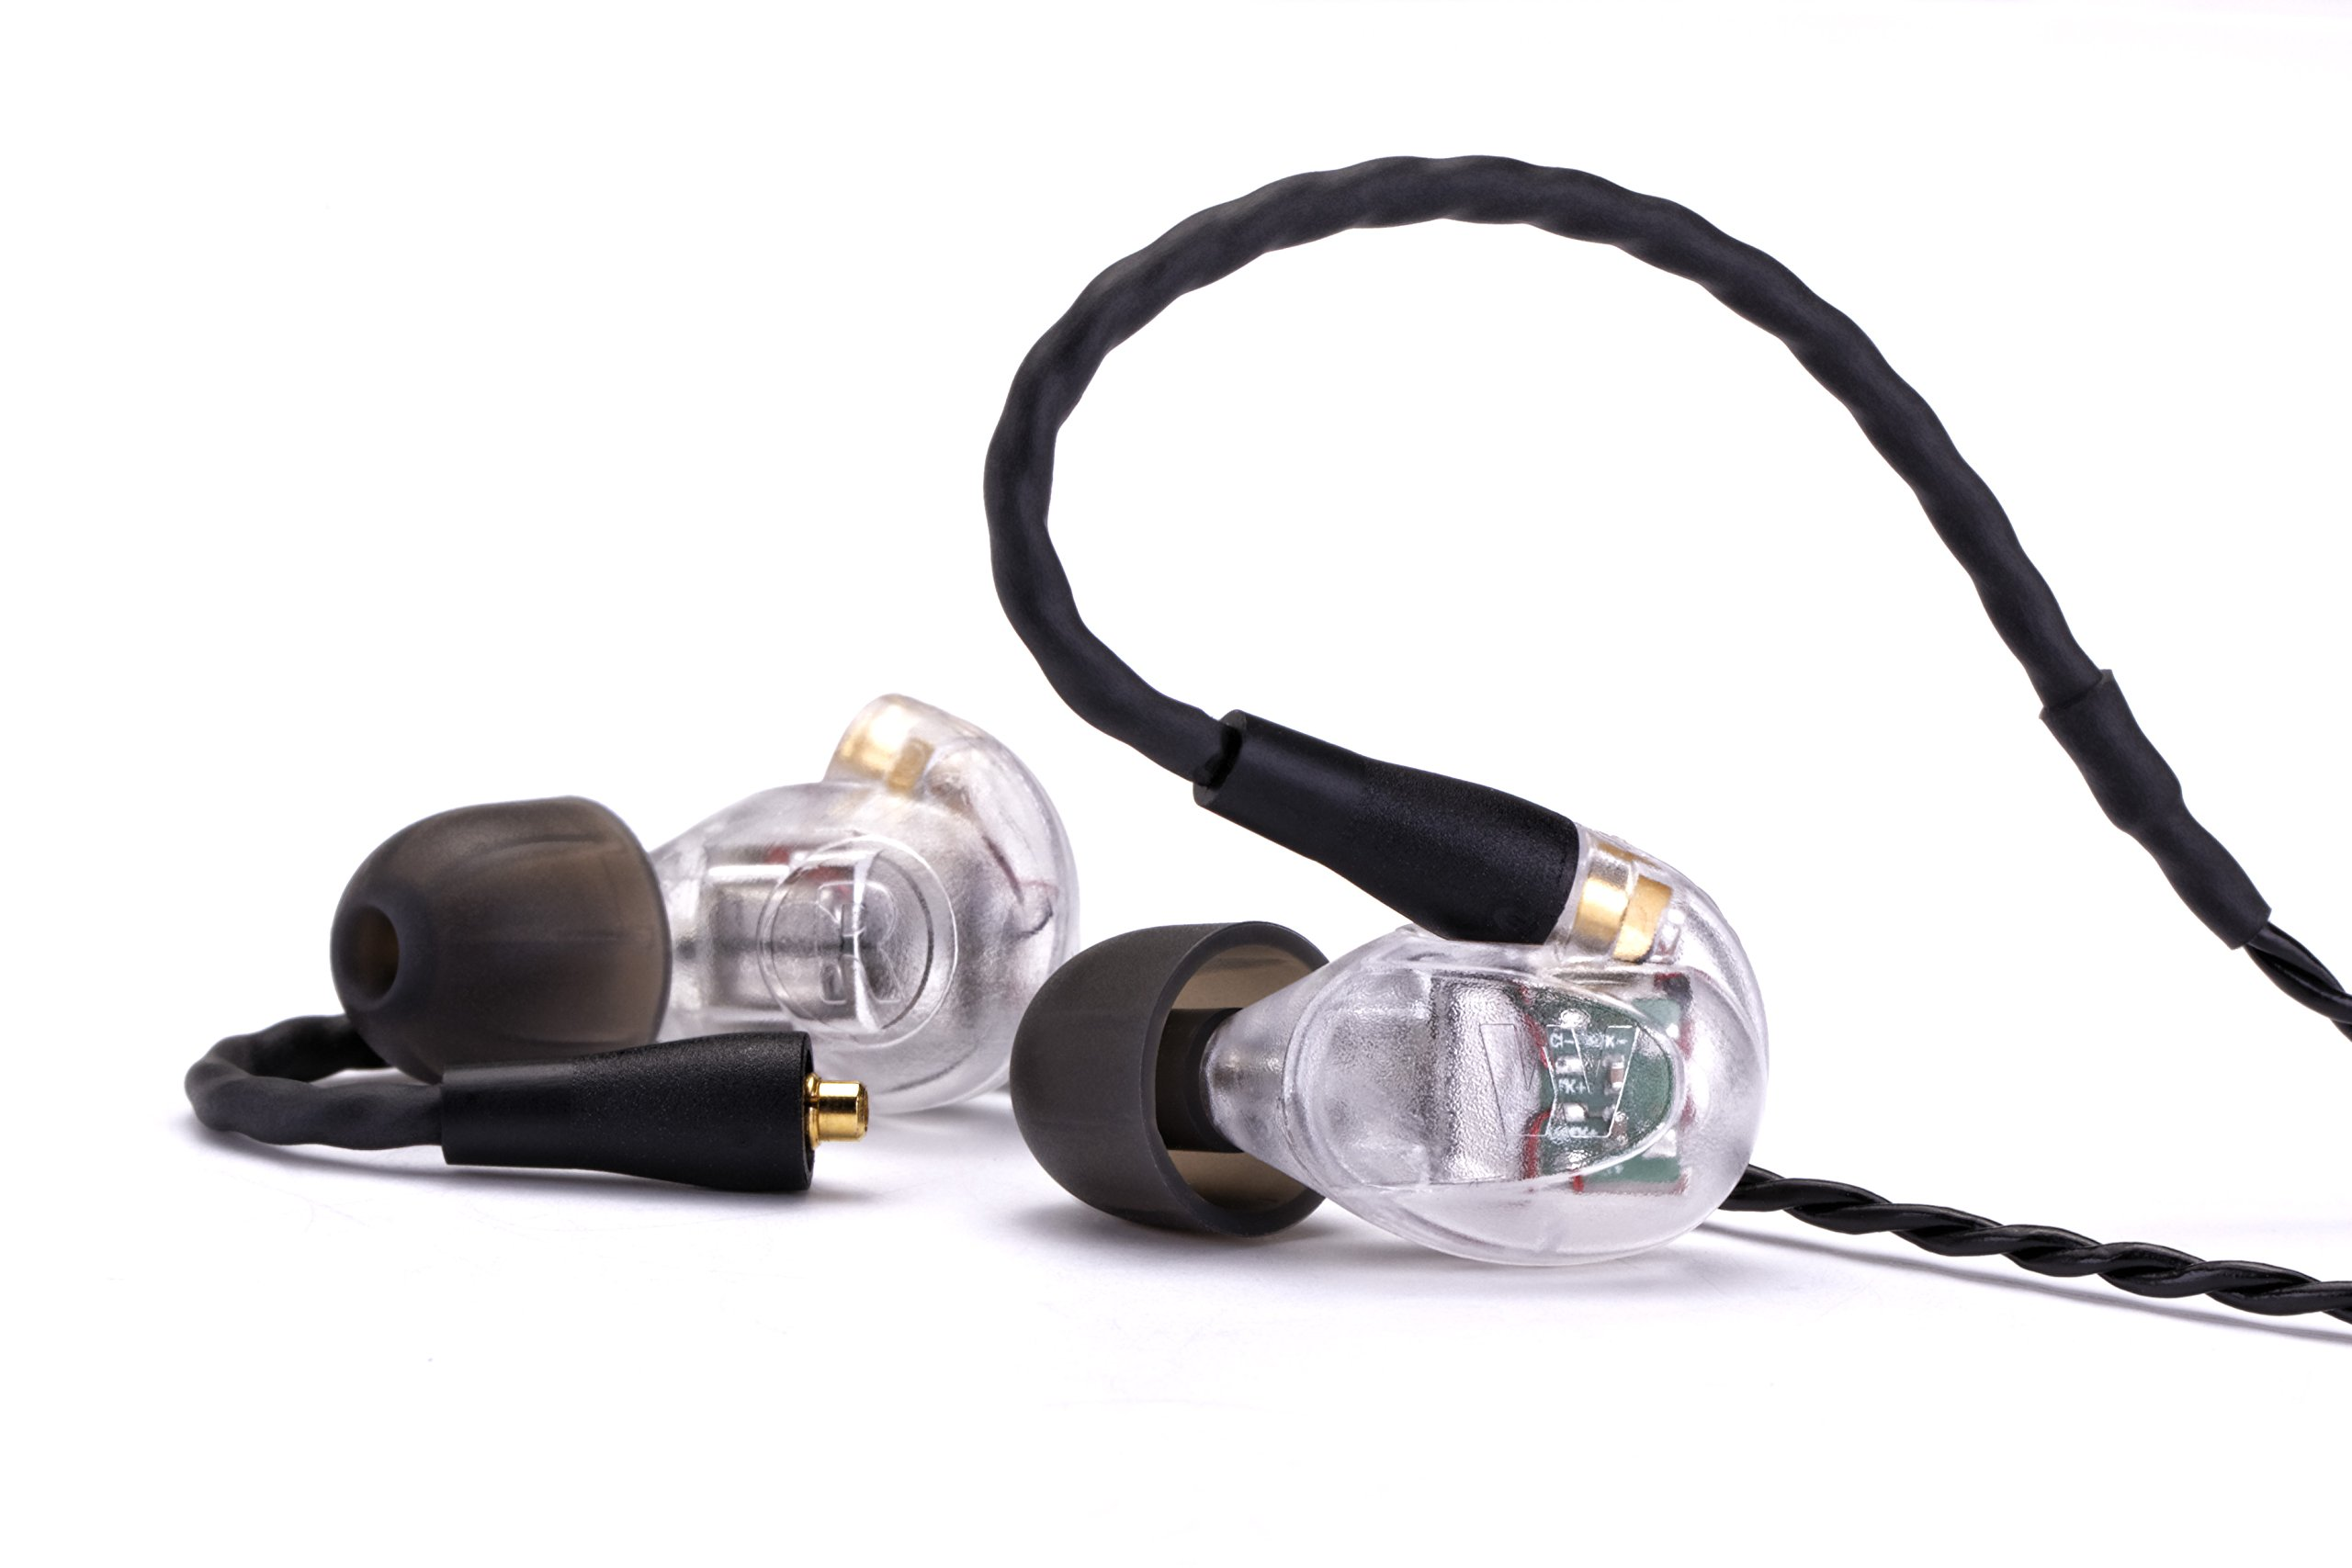 Westone - Old Model - UM Pro30 High Performance Triple Driver Universal Fit Earphones - Clear - Discontinued  by Manufacturer